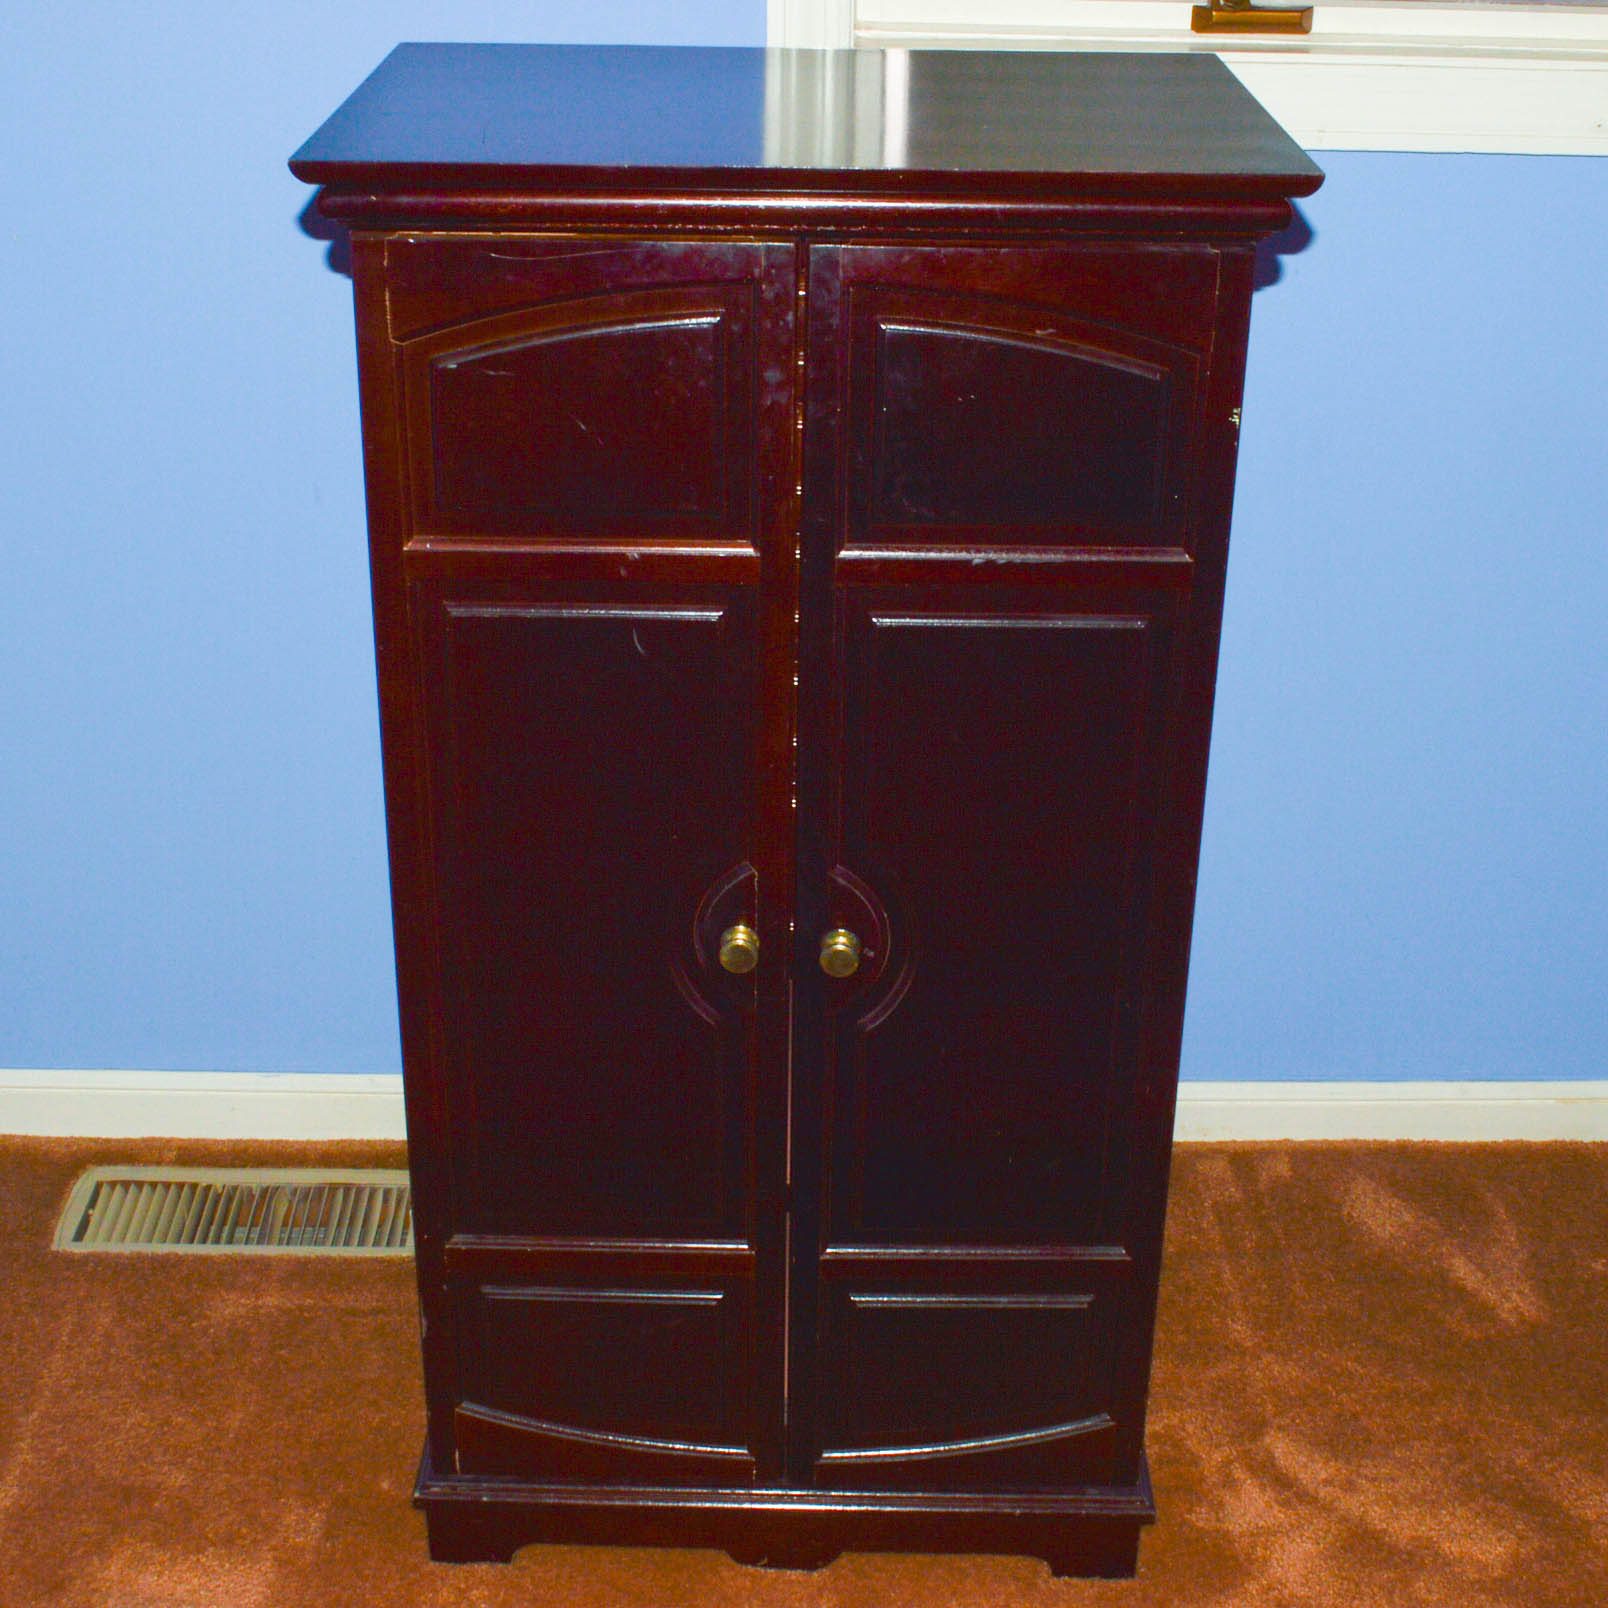 Olde English Jewelry Armoire by Powell EBTH